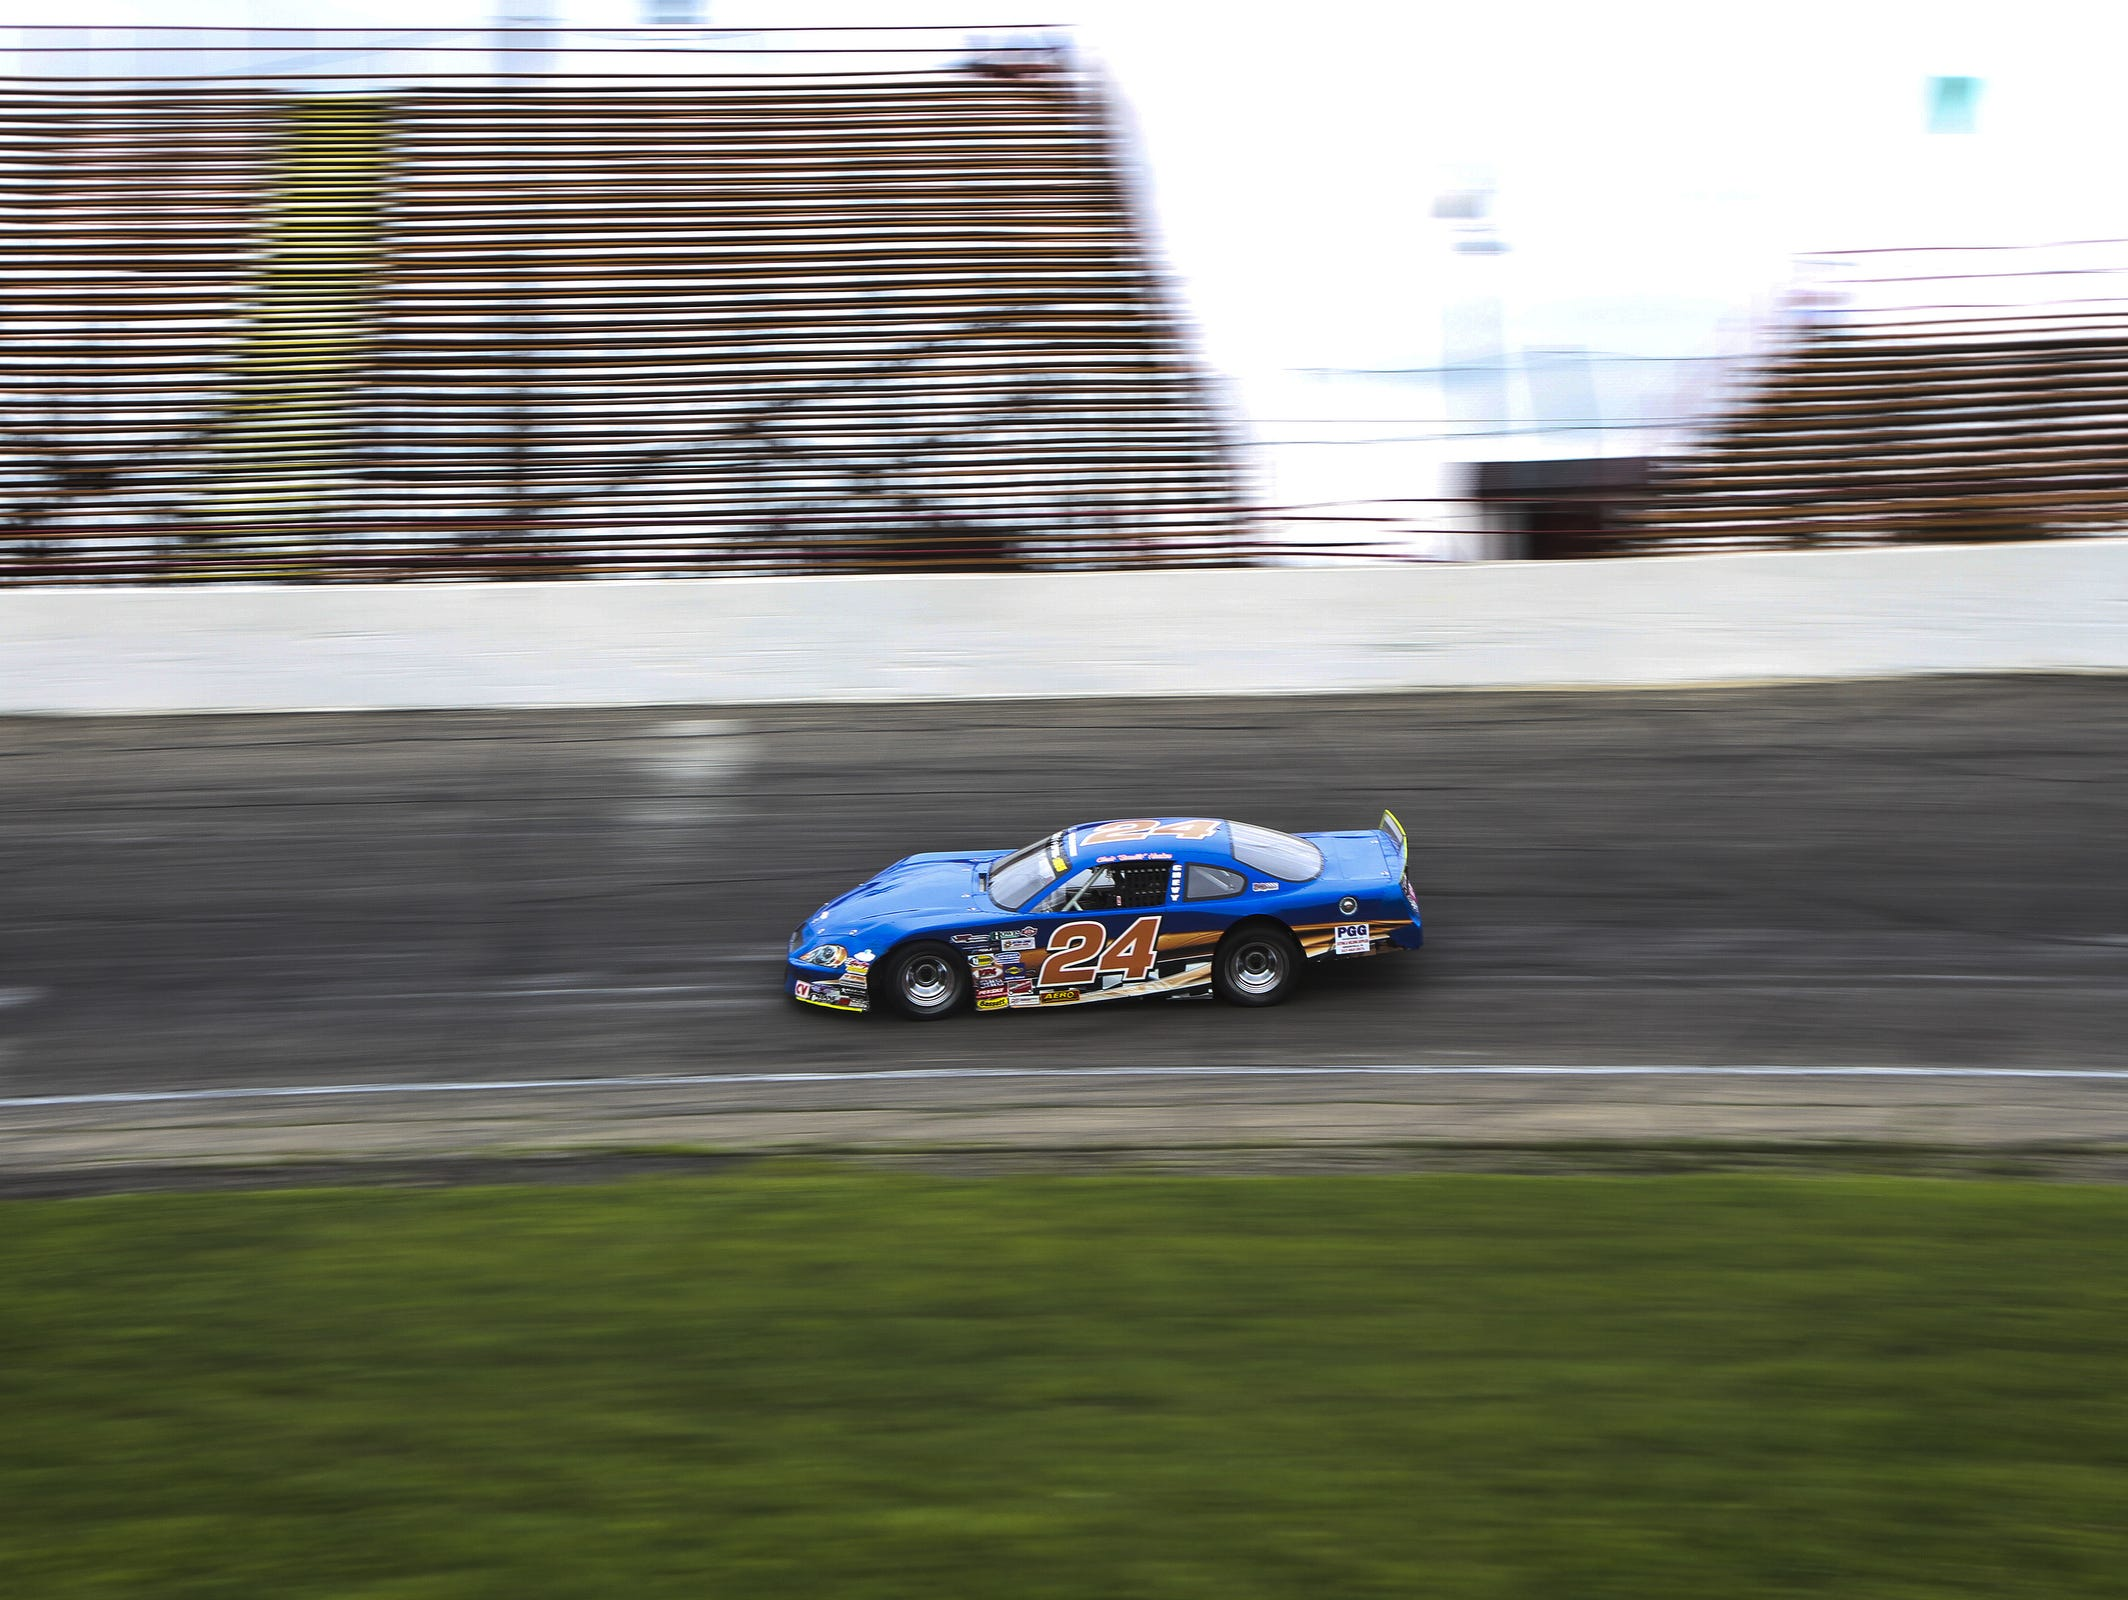 A car takes a practice run at Anderson Speedway in Anderson, Ind.